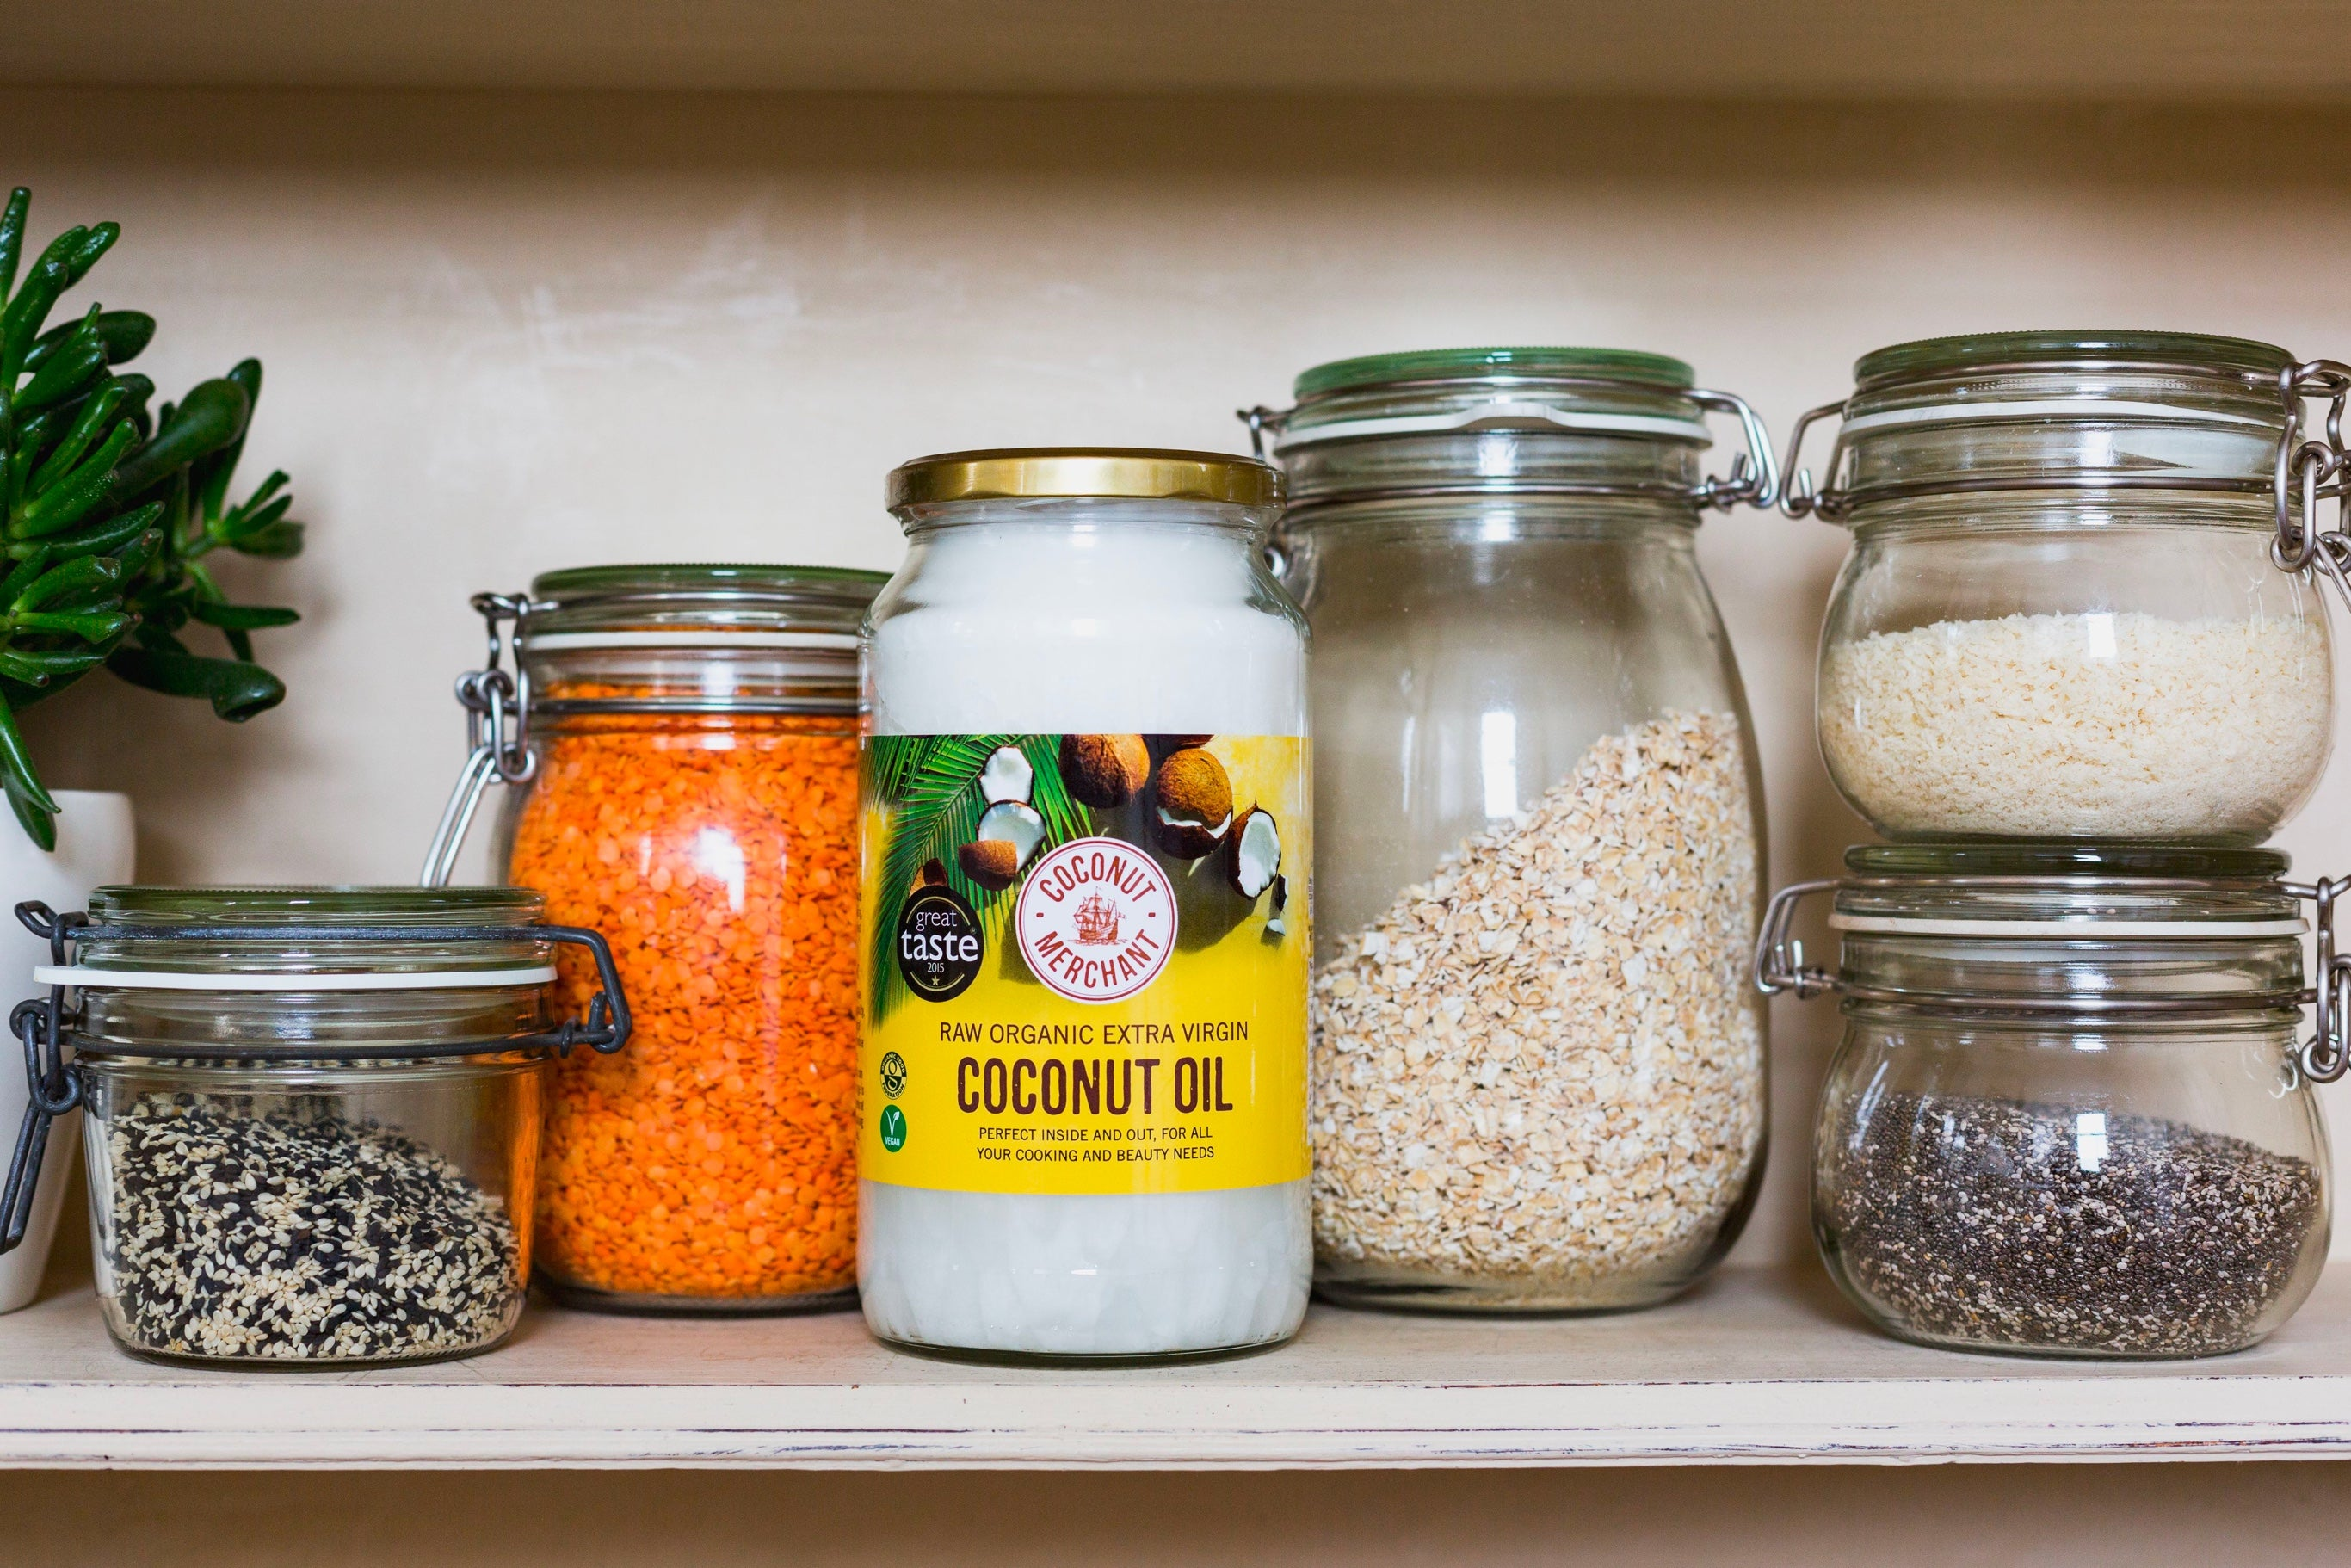 Shelf with ingredients on including a jar of coconut oil